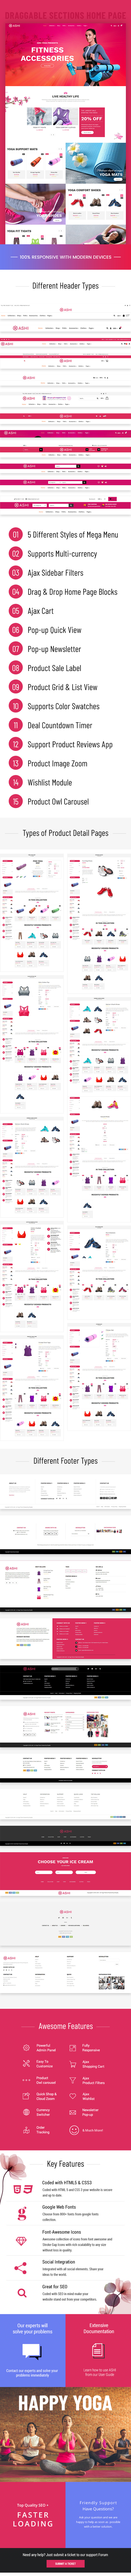 Ashi | Yoga, Fitness Shopify Theme - 1